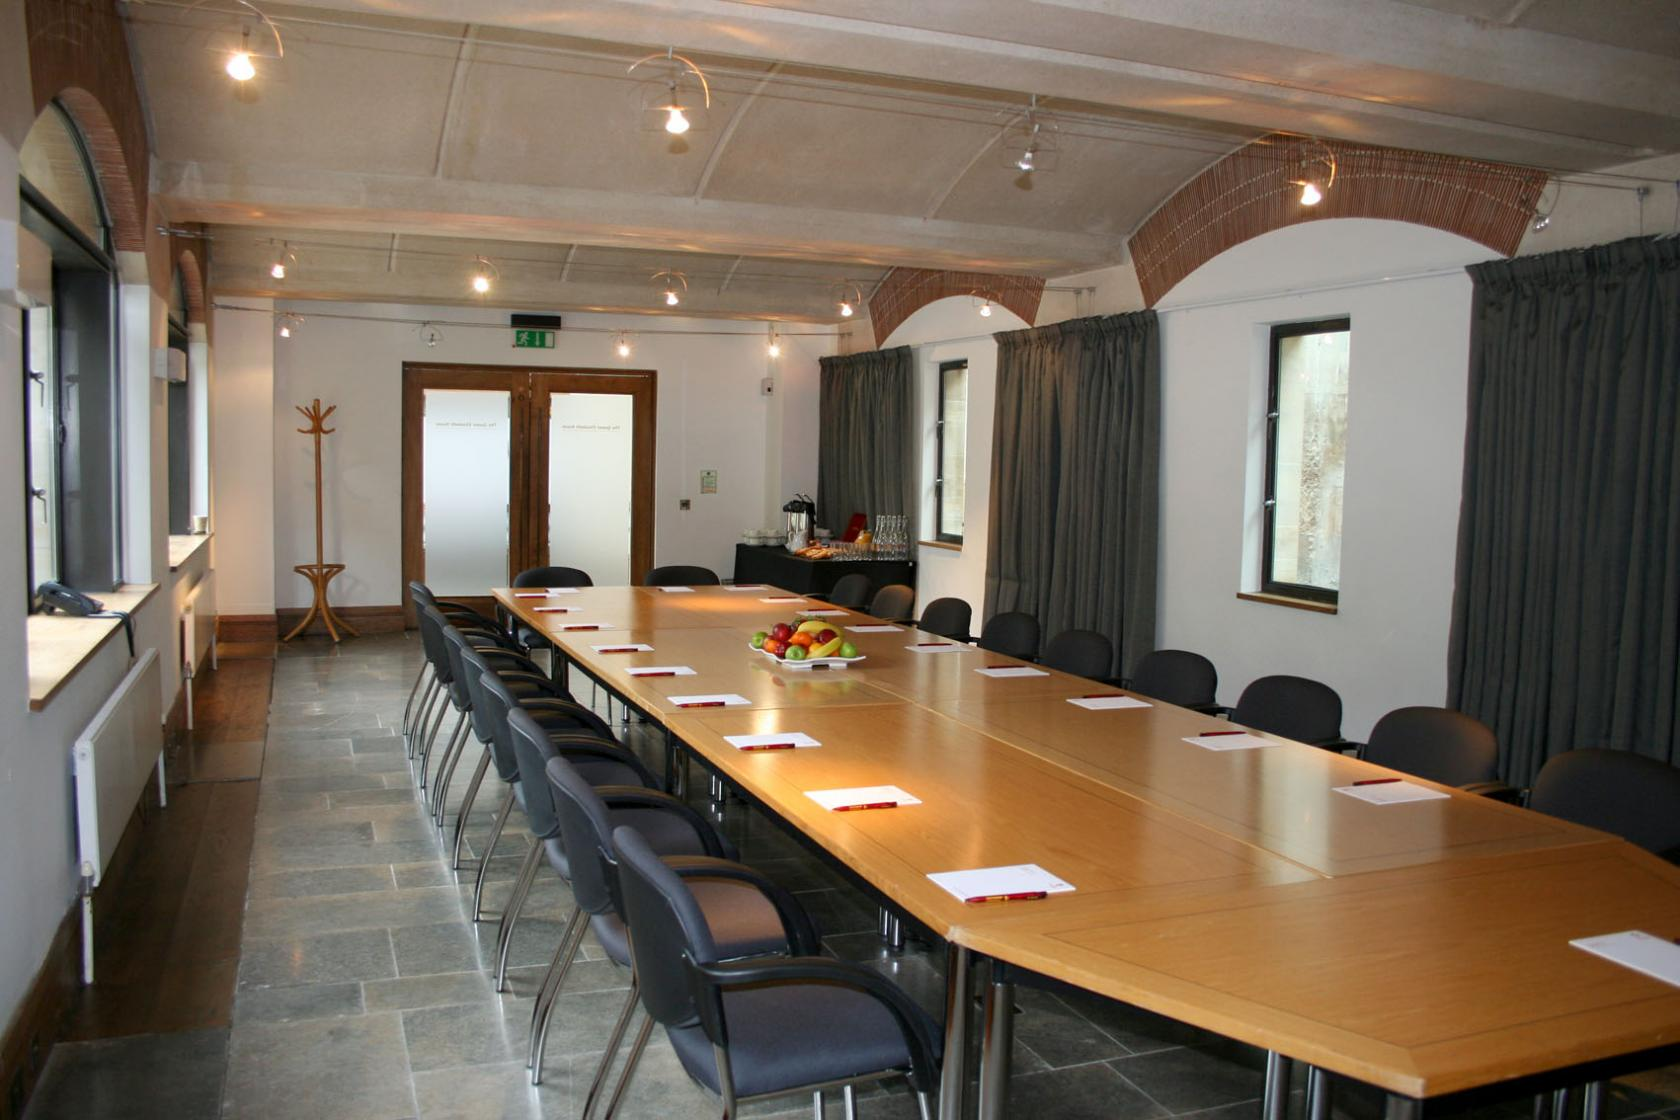 Queen Elizabeth Room At Southwark Cathedral Private Hire